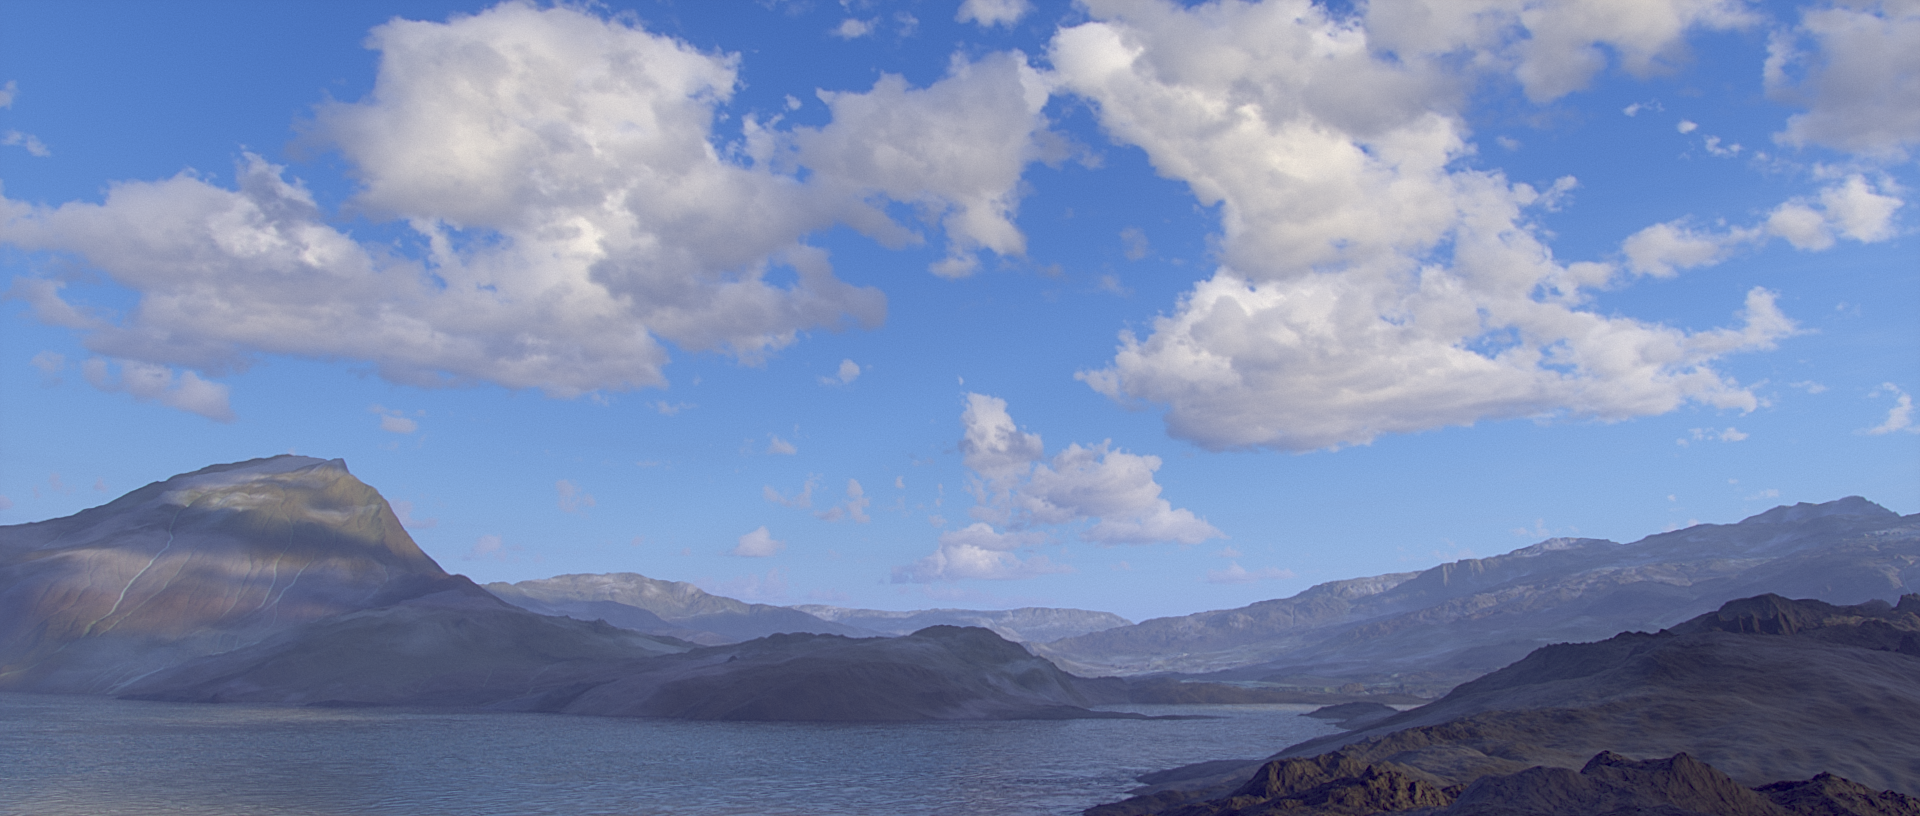 RL Perfect Clouds 10 Image.png